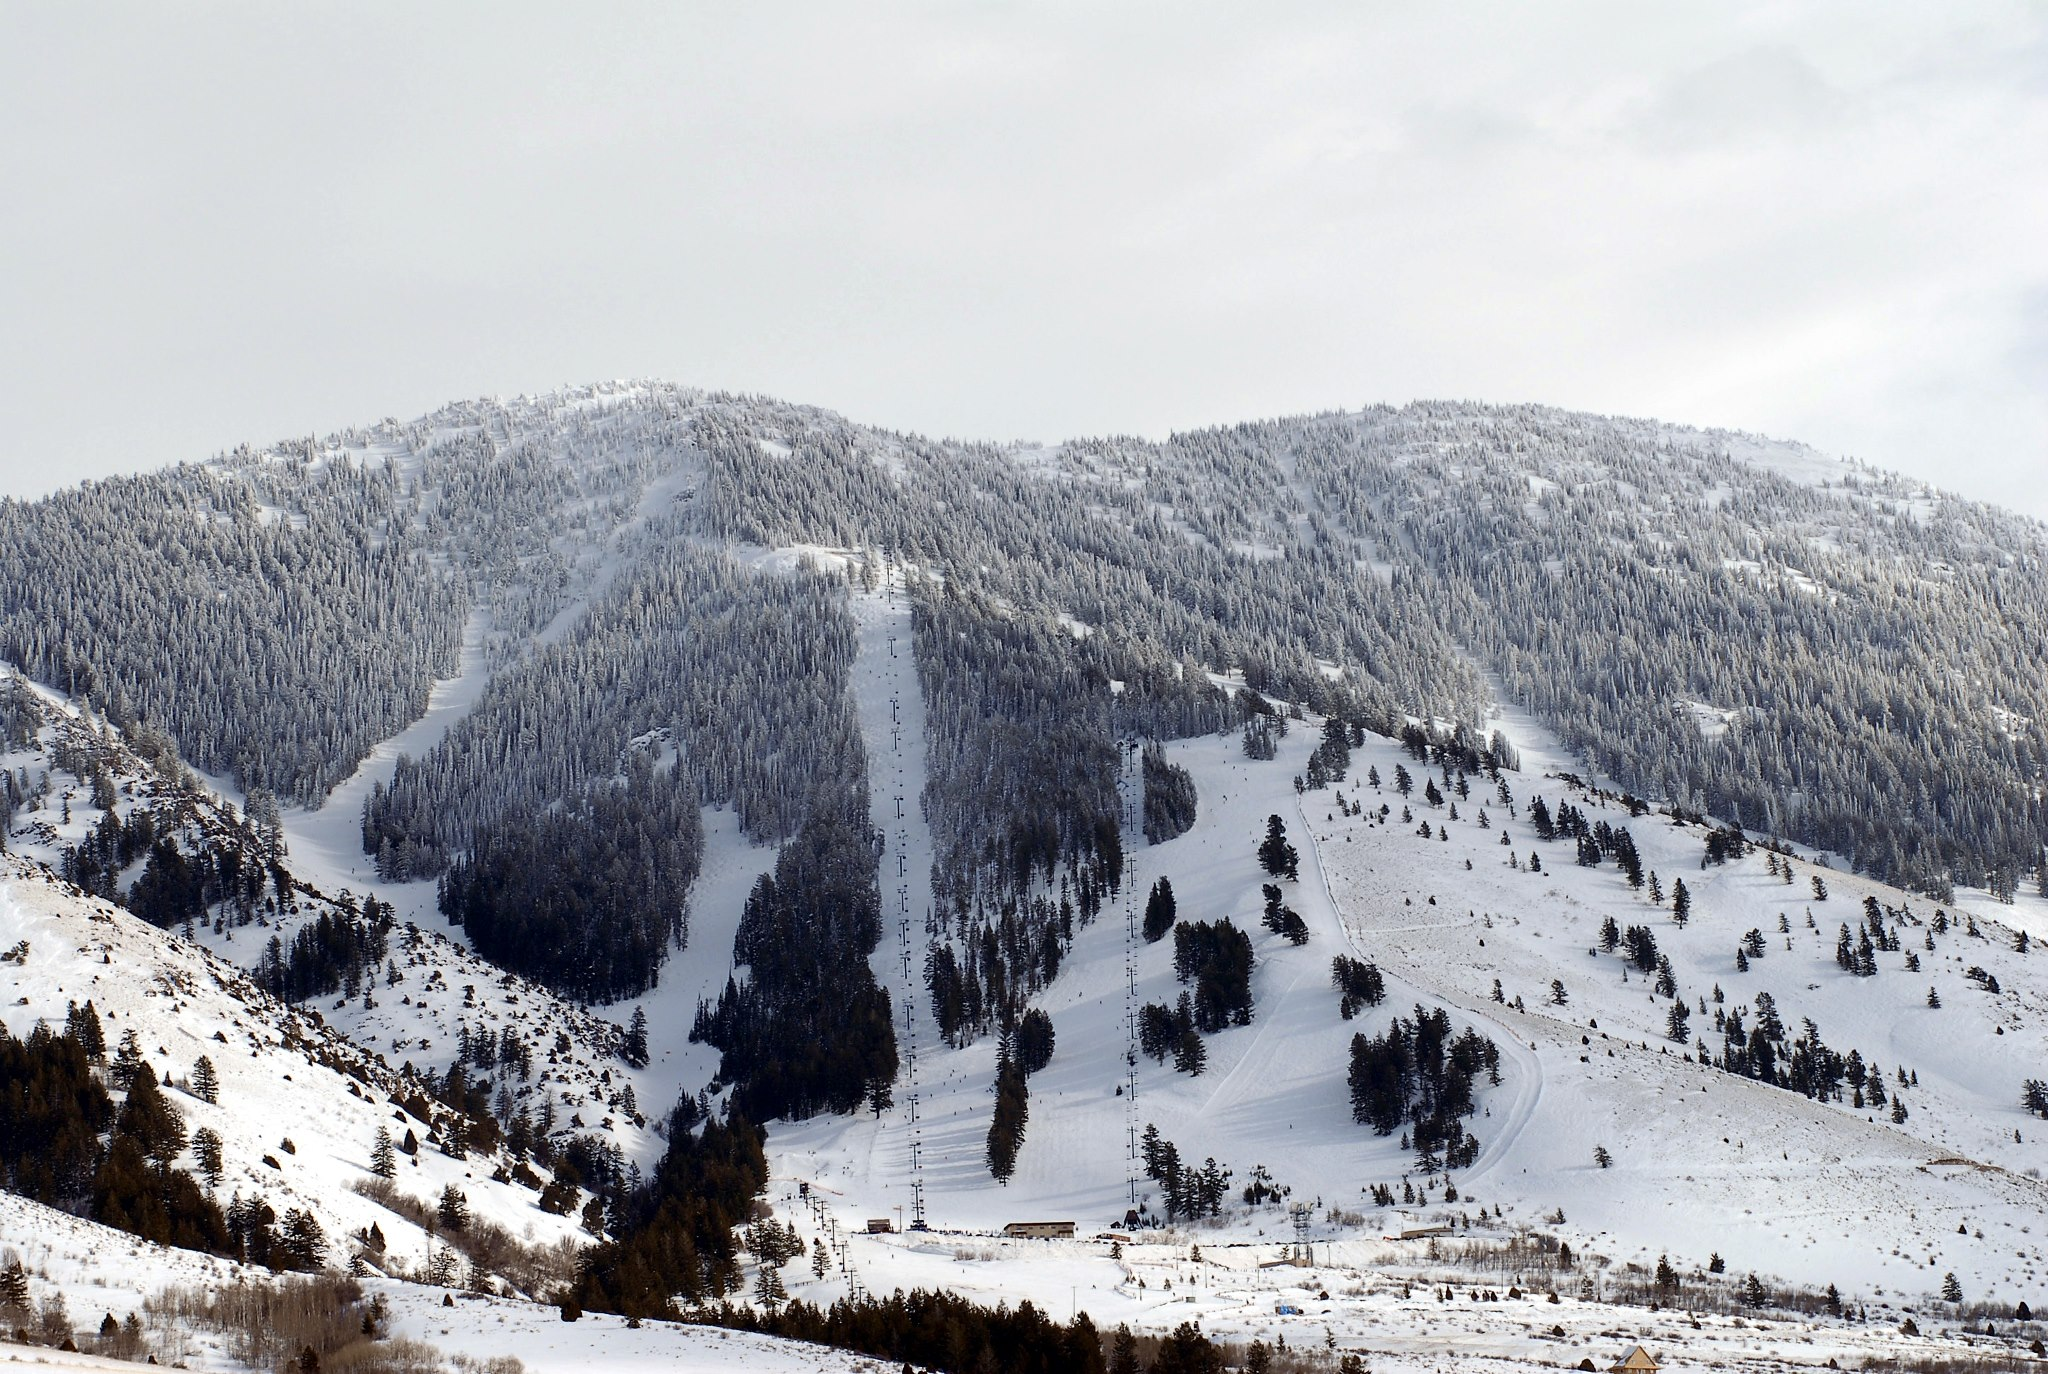 Maybe I'll get to ski here this winter...